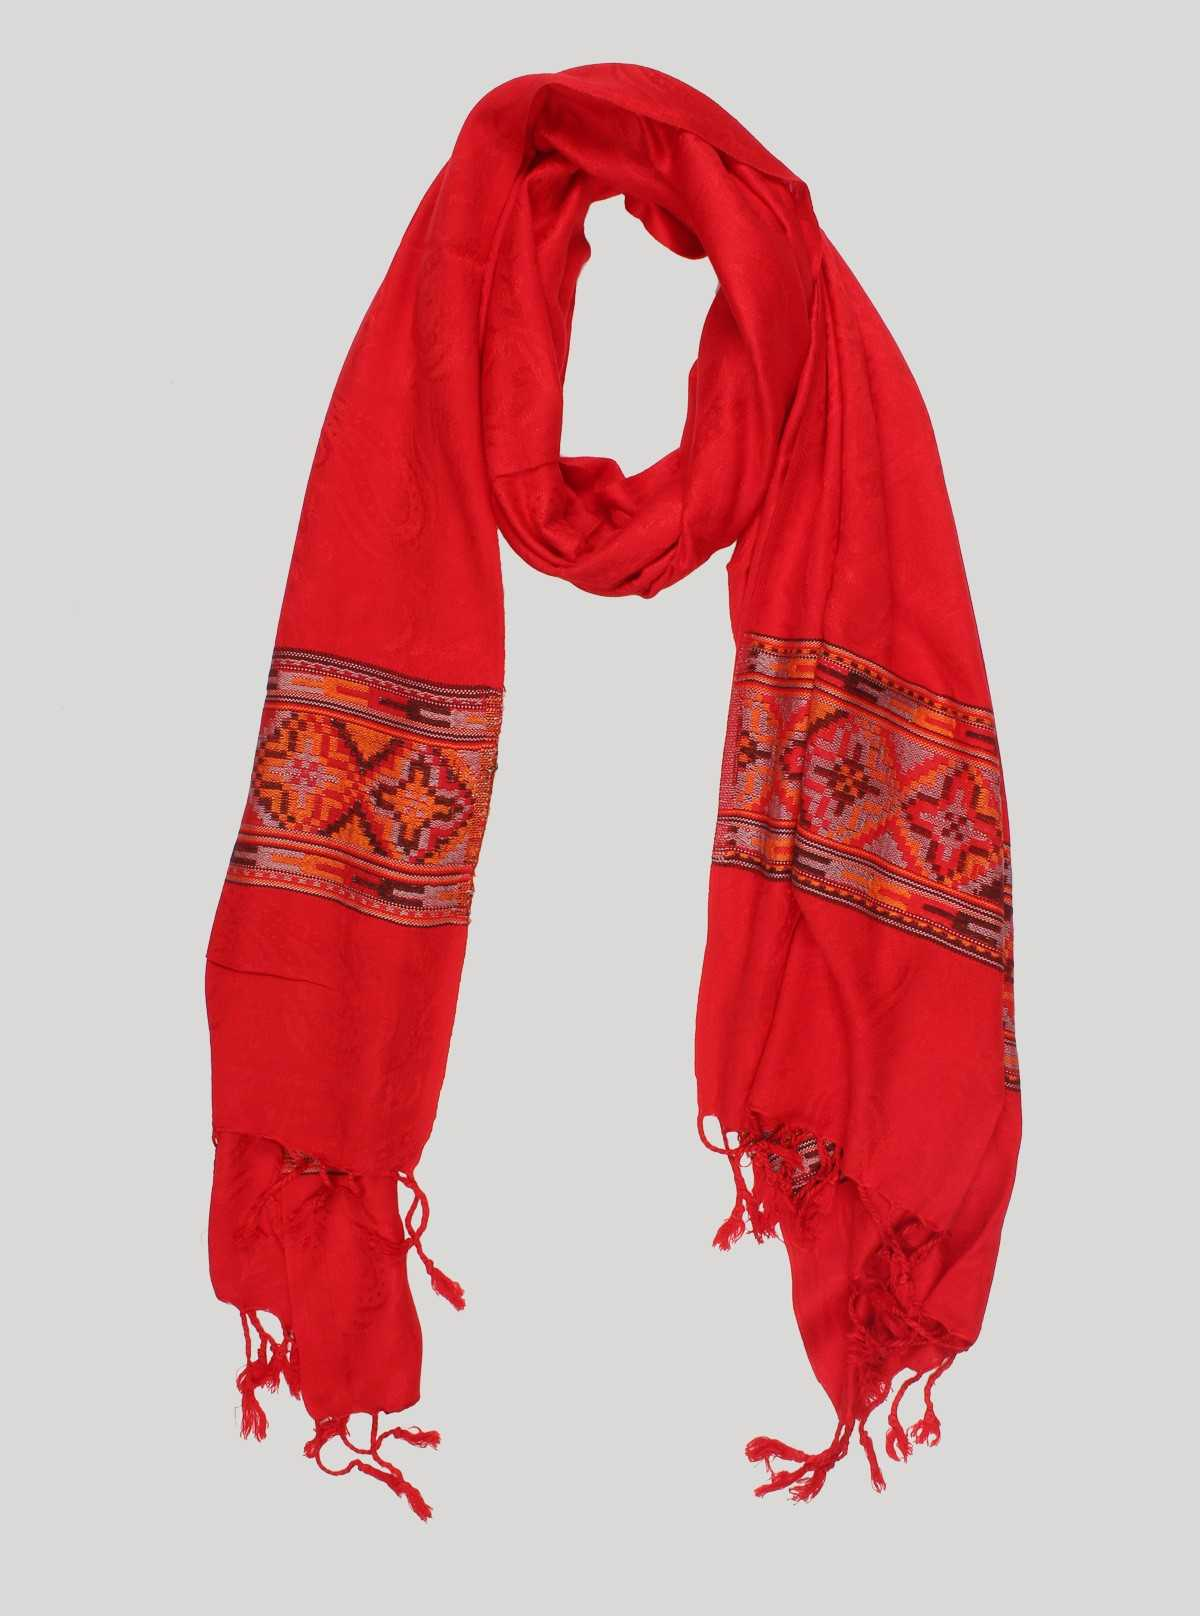 Red Color Viscose Scarf Boer and Fitch - 1